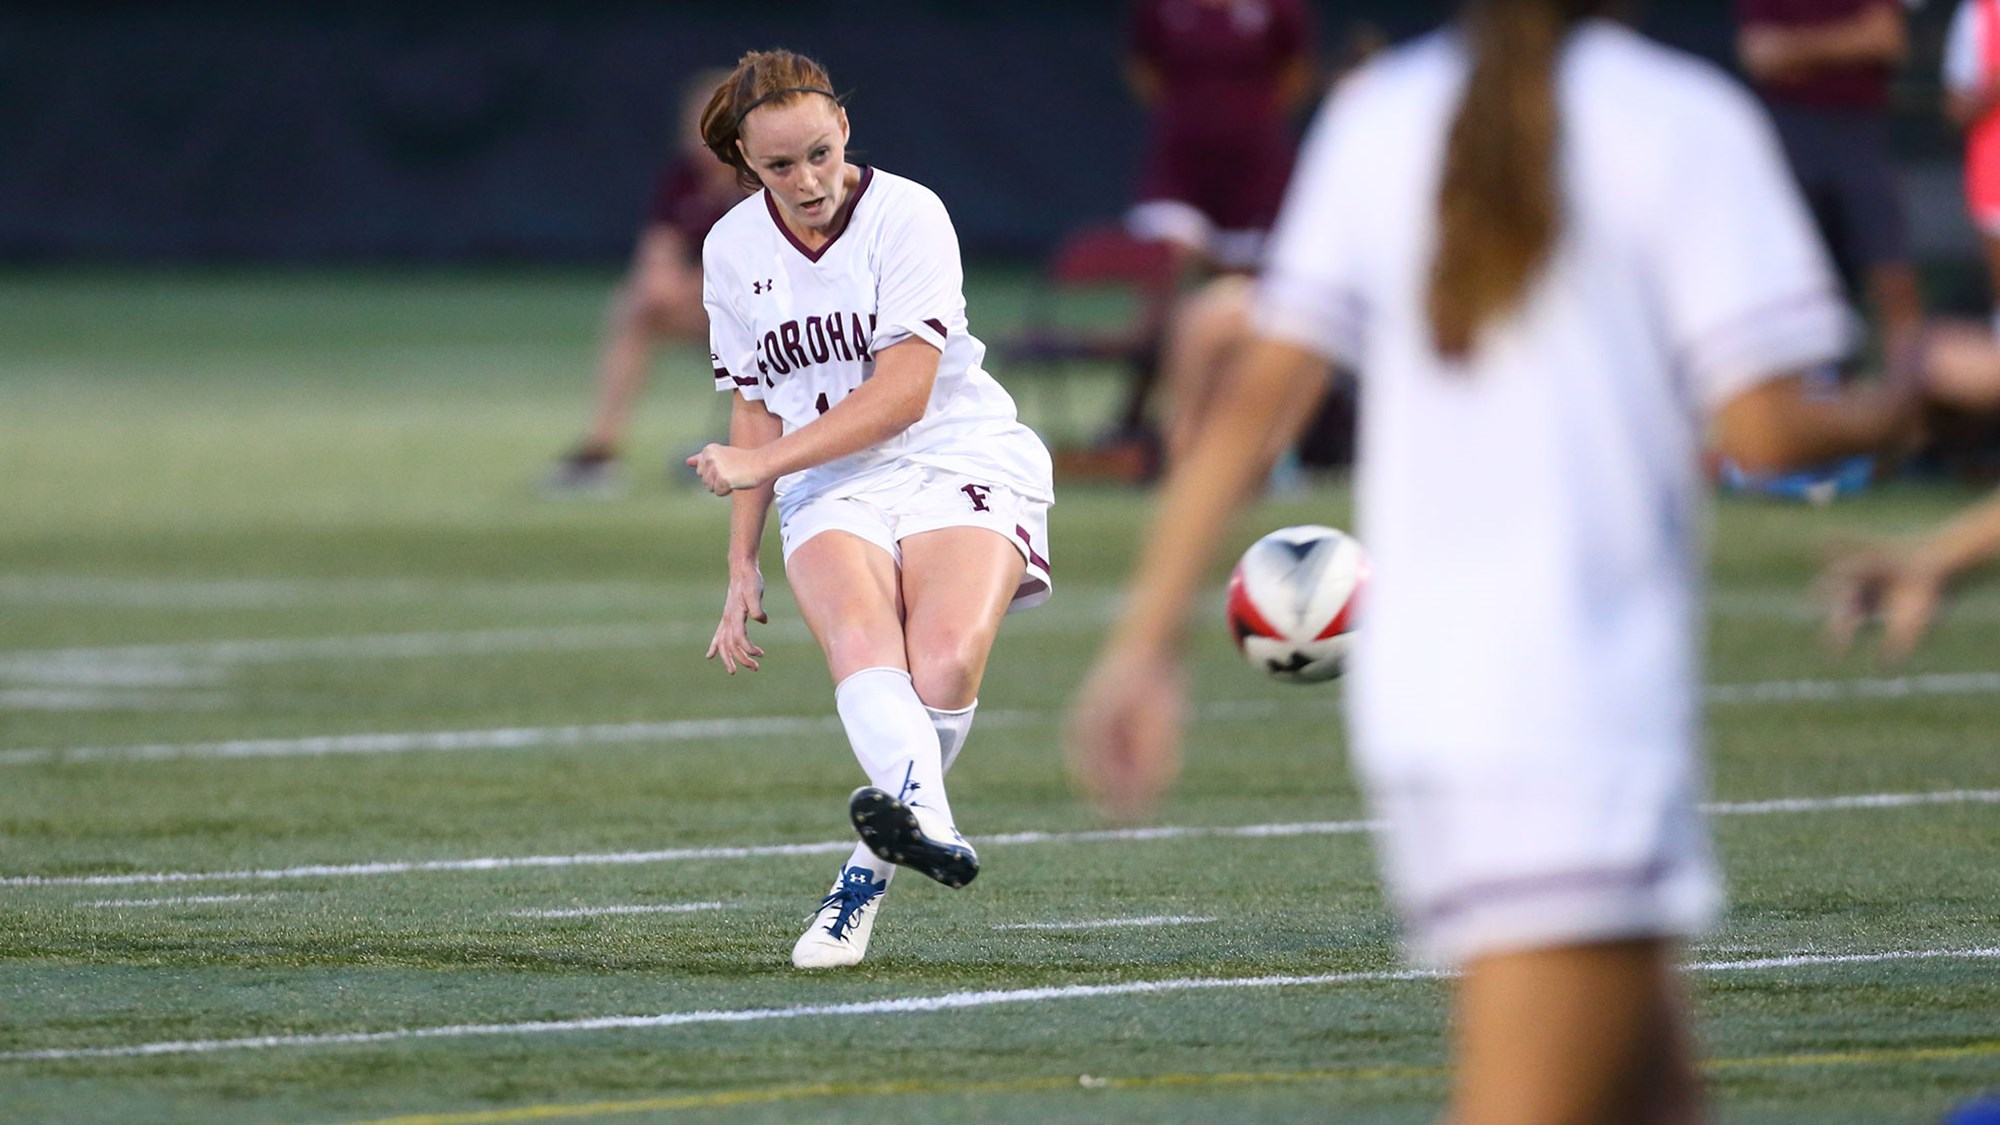 womens non conference soccer action - HD2000×1125